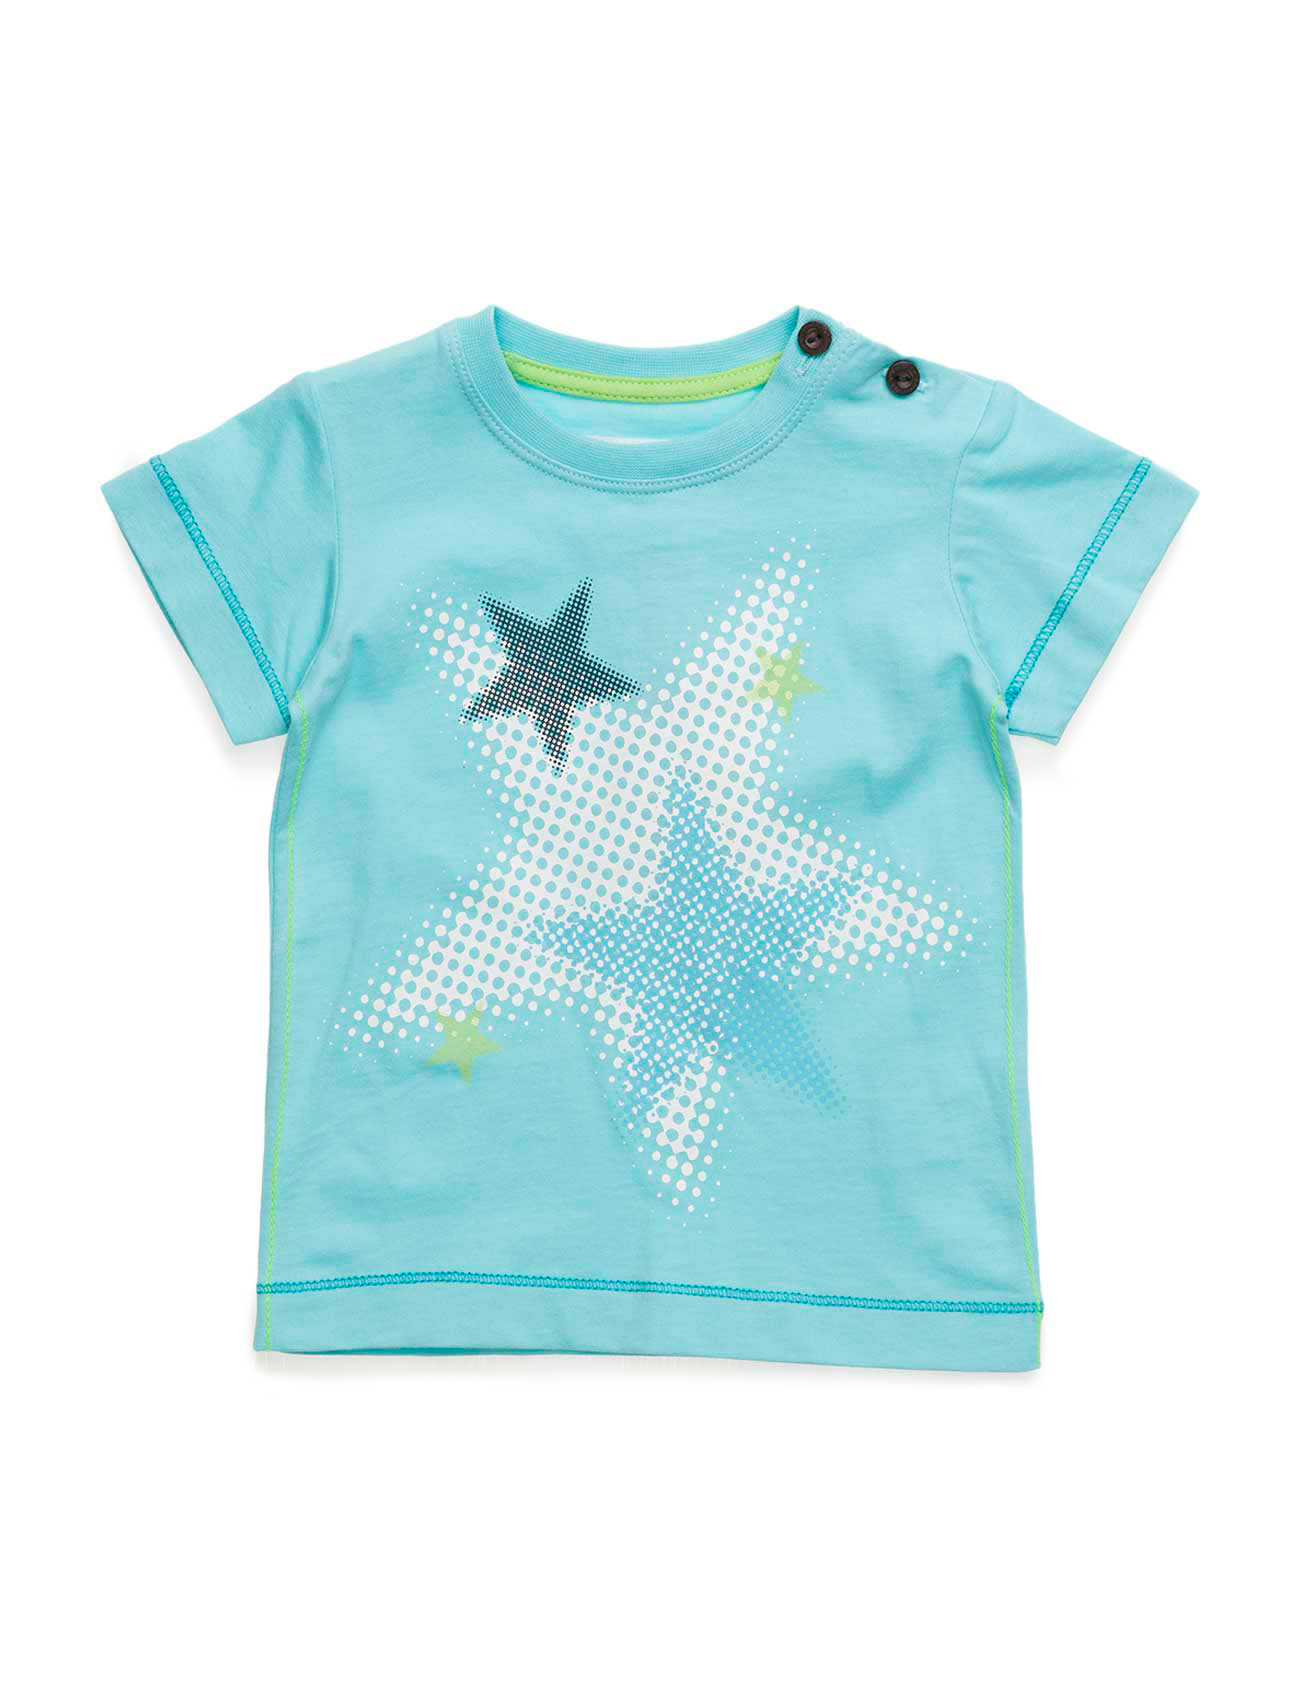 Malle Baby Top